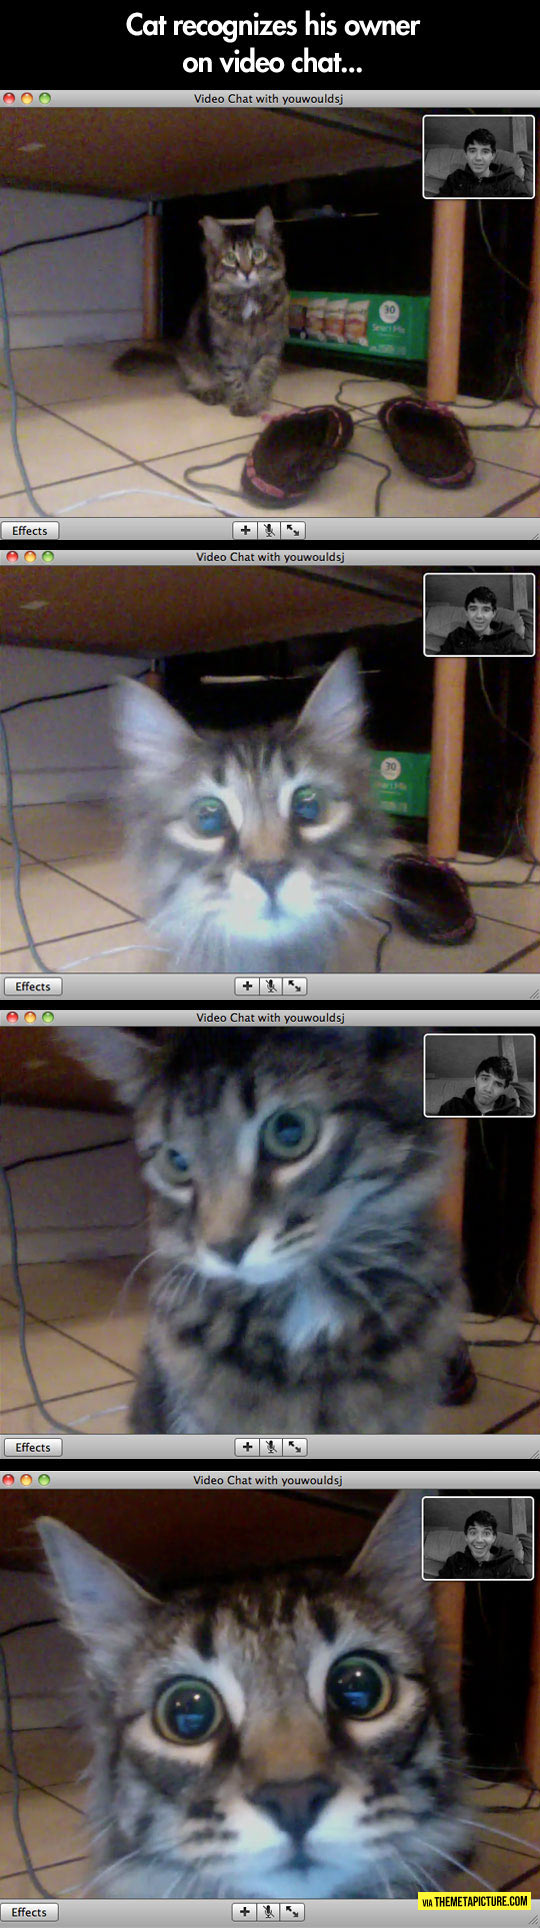 funny-cat-screen-video-call-owner